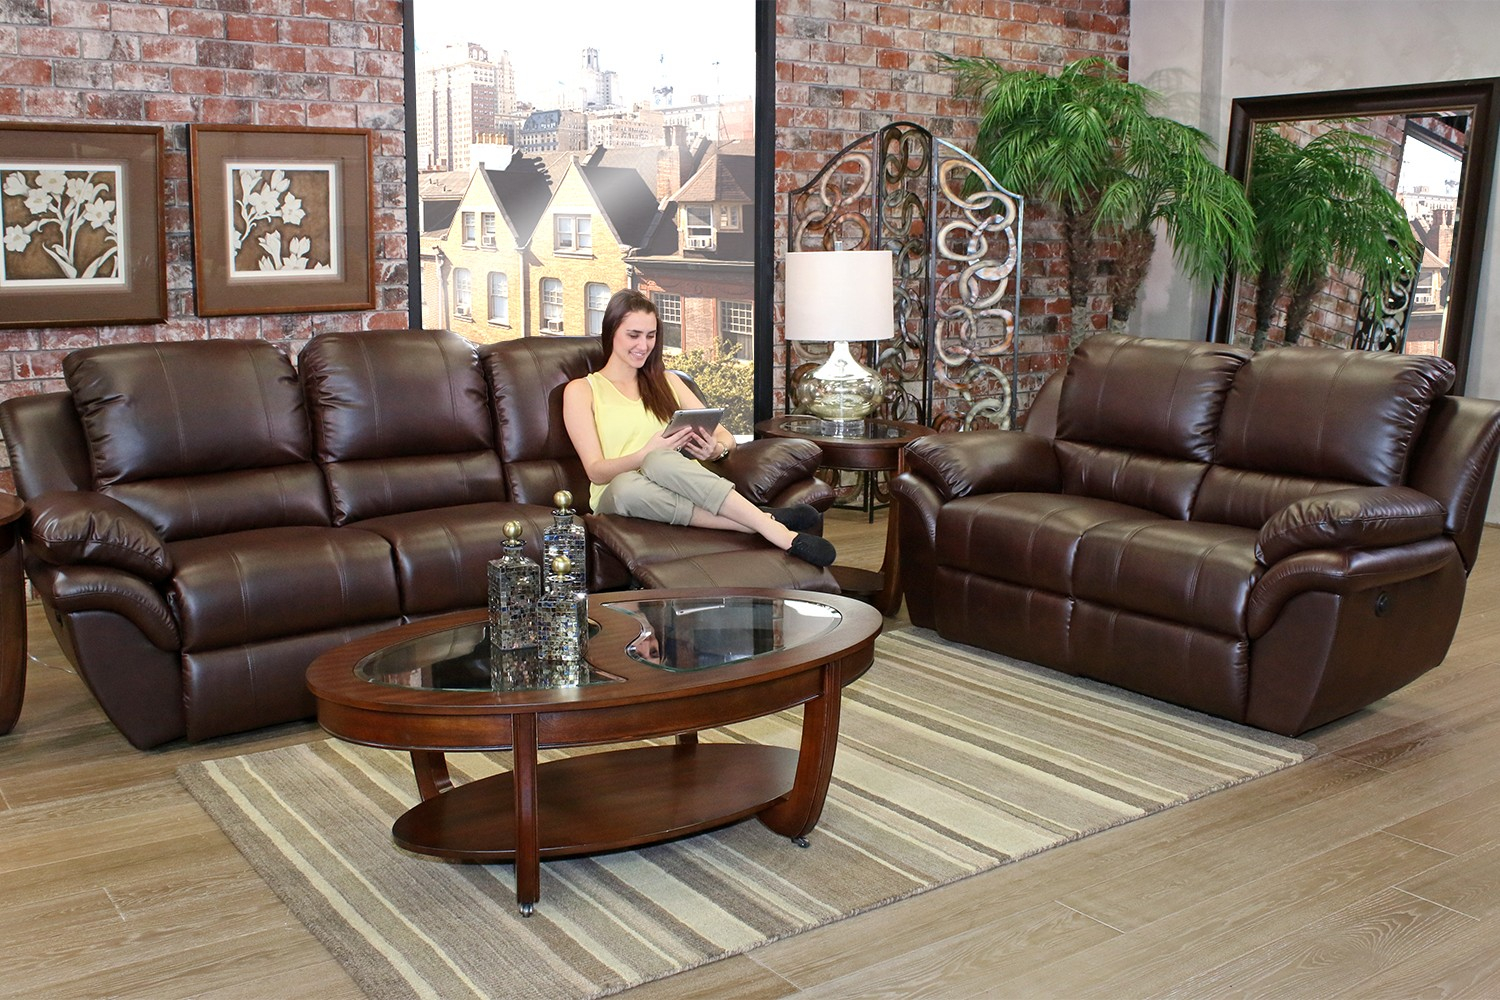 Amazing Mor Furniture For Less Bakersfield Ca With Cabo throughout Mor Furniture For Less Bakersfield